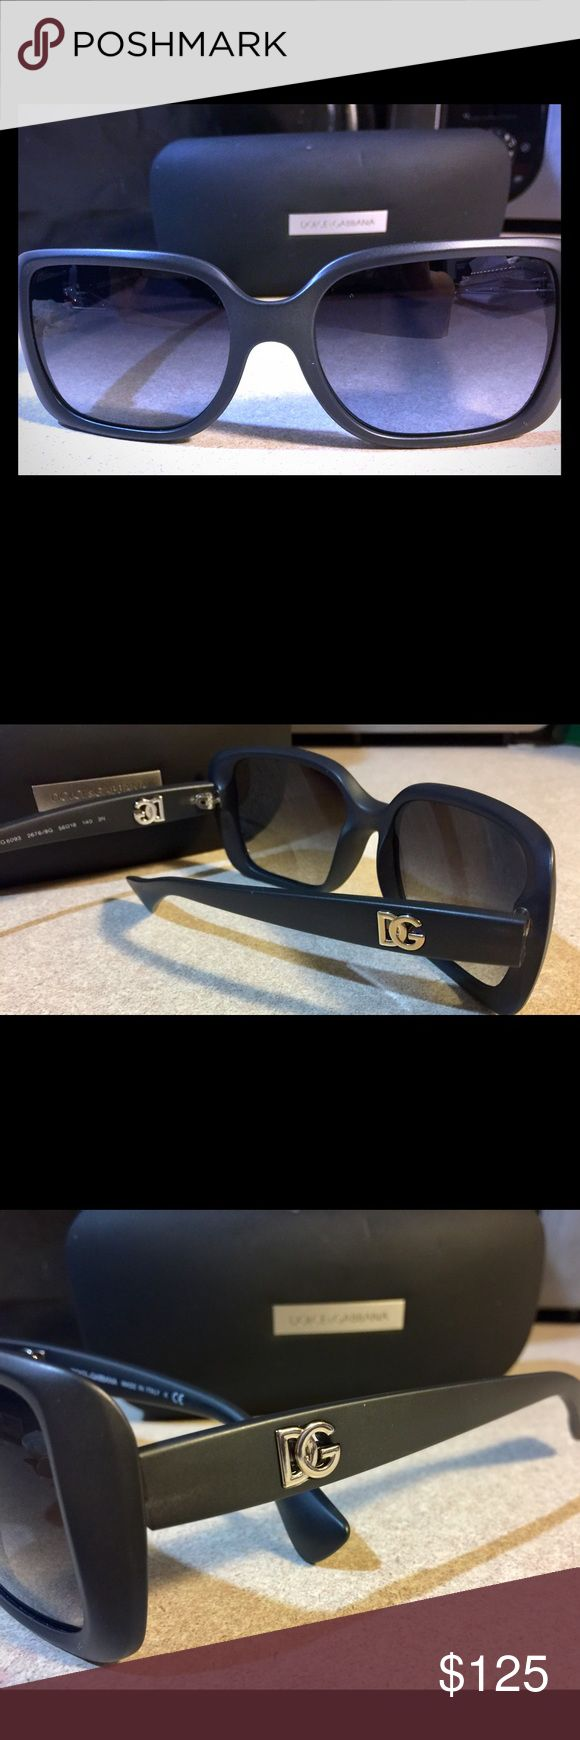 ‼️‼️Dolce & Gabbana Women's Sunglasses‼️‼️ ‼️PRICE DROP MUST GO‼️Brand-new high quality Dolce and Cabbana's women sunglasses for sale! Comes with Dolce and Cabbana case. These have never been worn I bought them with a flex spending card last year and I will never wear them so I figured I try to sell them. No marks or scratches of any kind and again very well-made sunglasses!!! Dolce & Gabbana Accessories Sunglasses